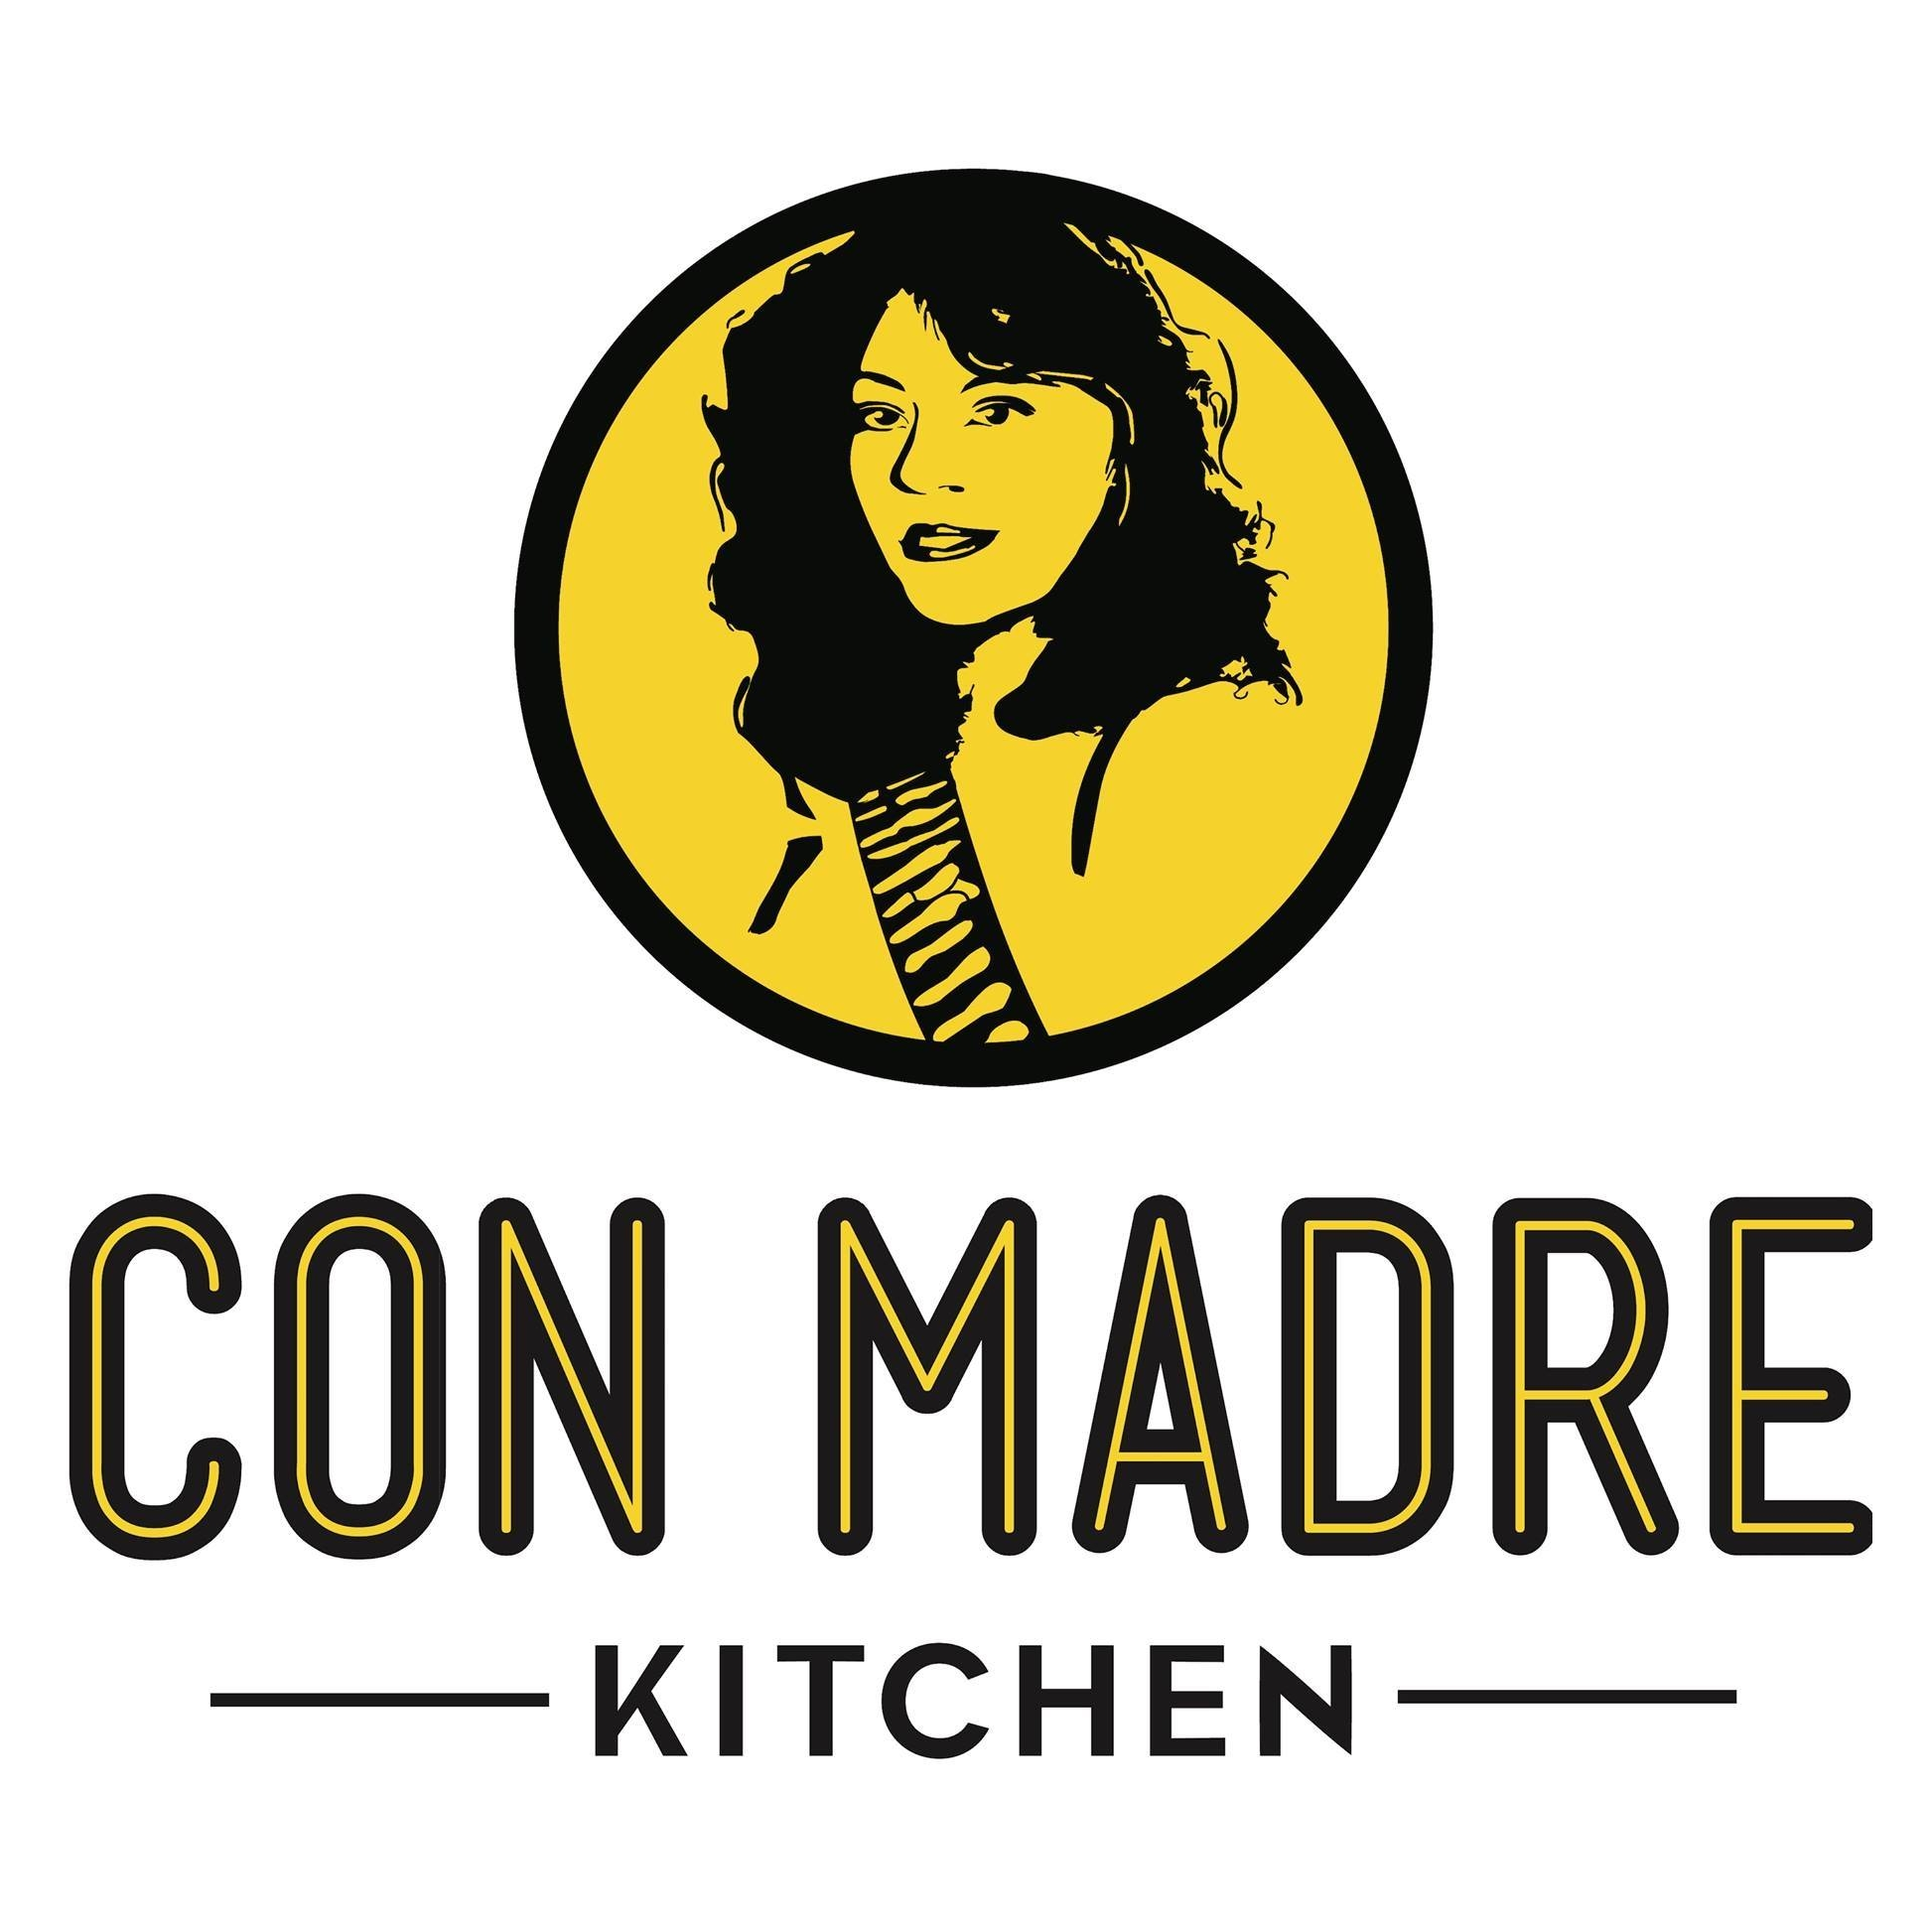 Con Madre Kitchen logo